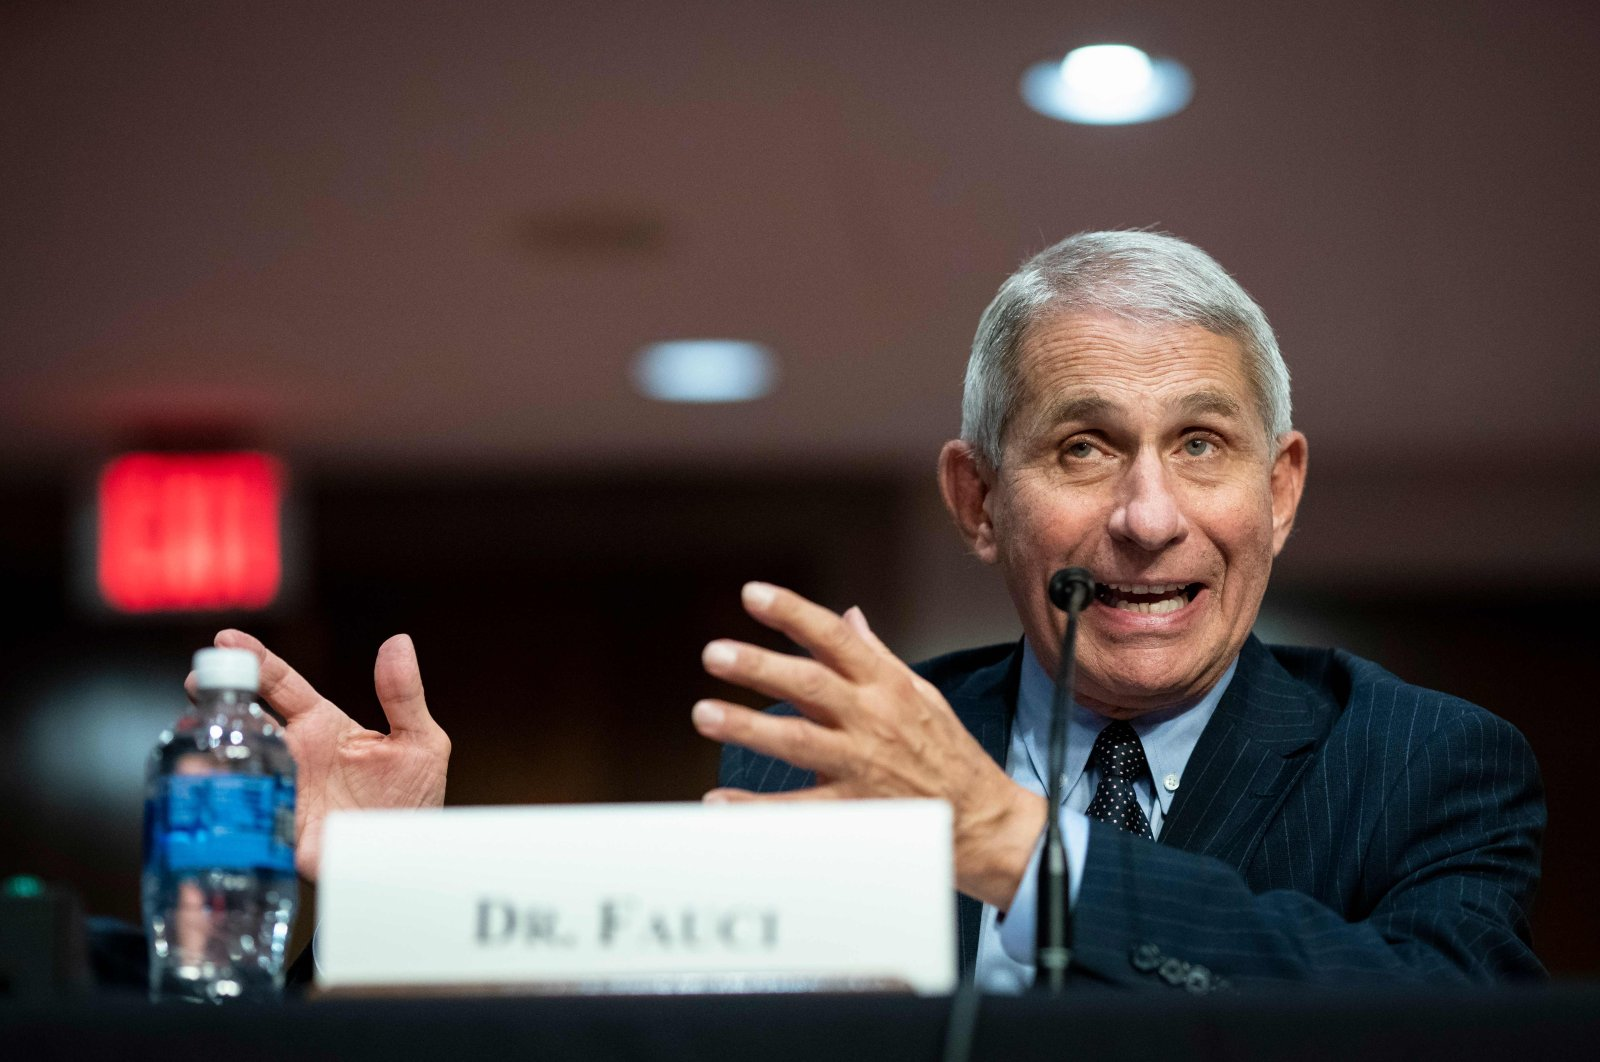 Anthony Fauci, director of the National Institute of Allergy and Infectious Diseases, speaks during a Senate Health, Education, Labor and Pensions Committee hearing in Washington, D.C., June 30, 2020. (AFP Photo)